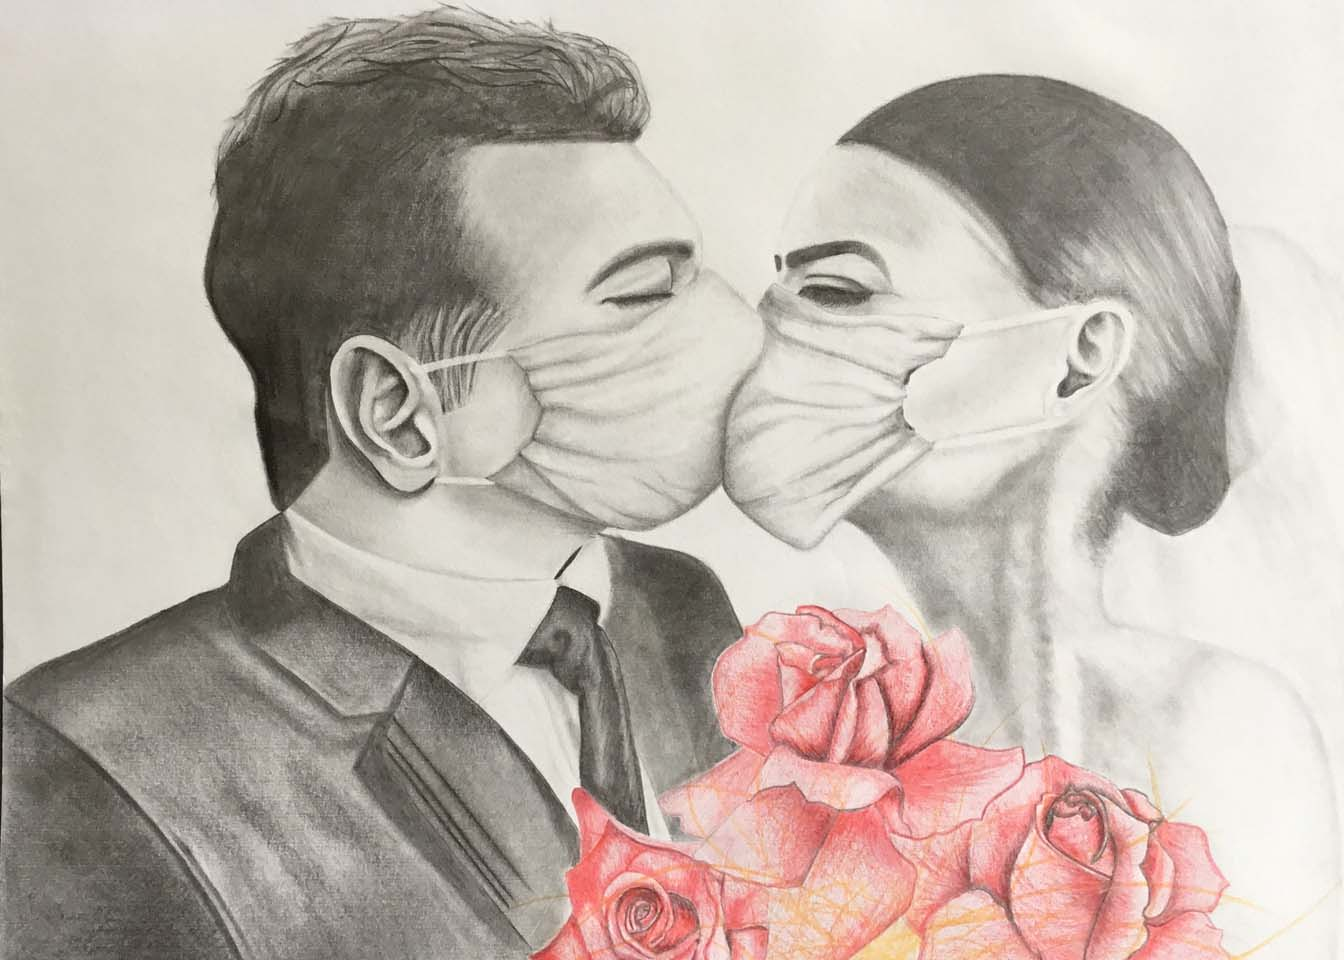 Masked people kissing